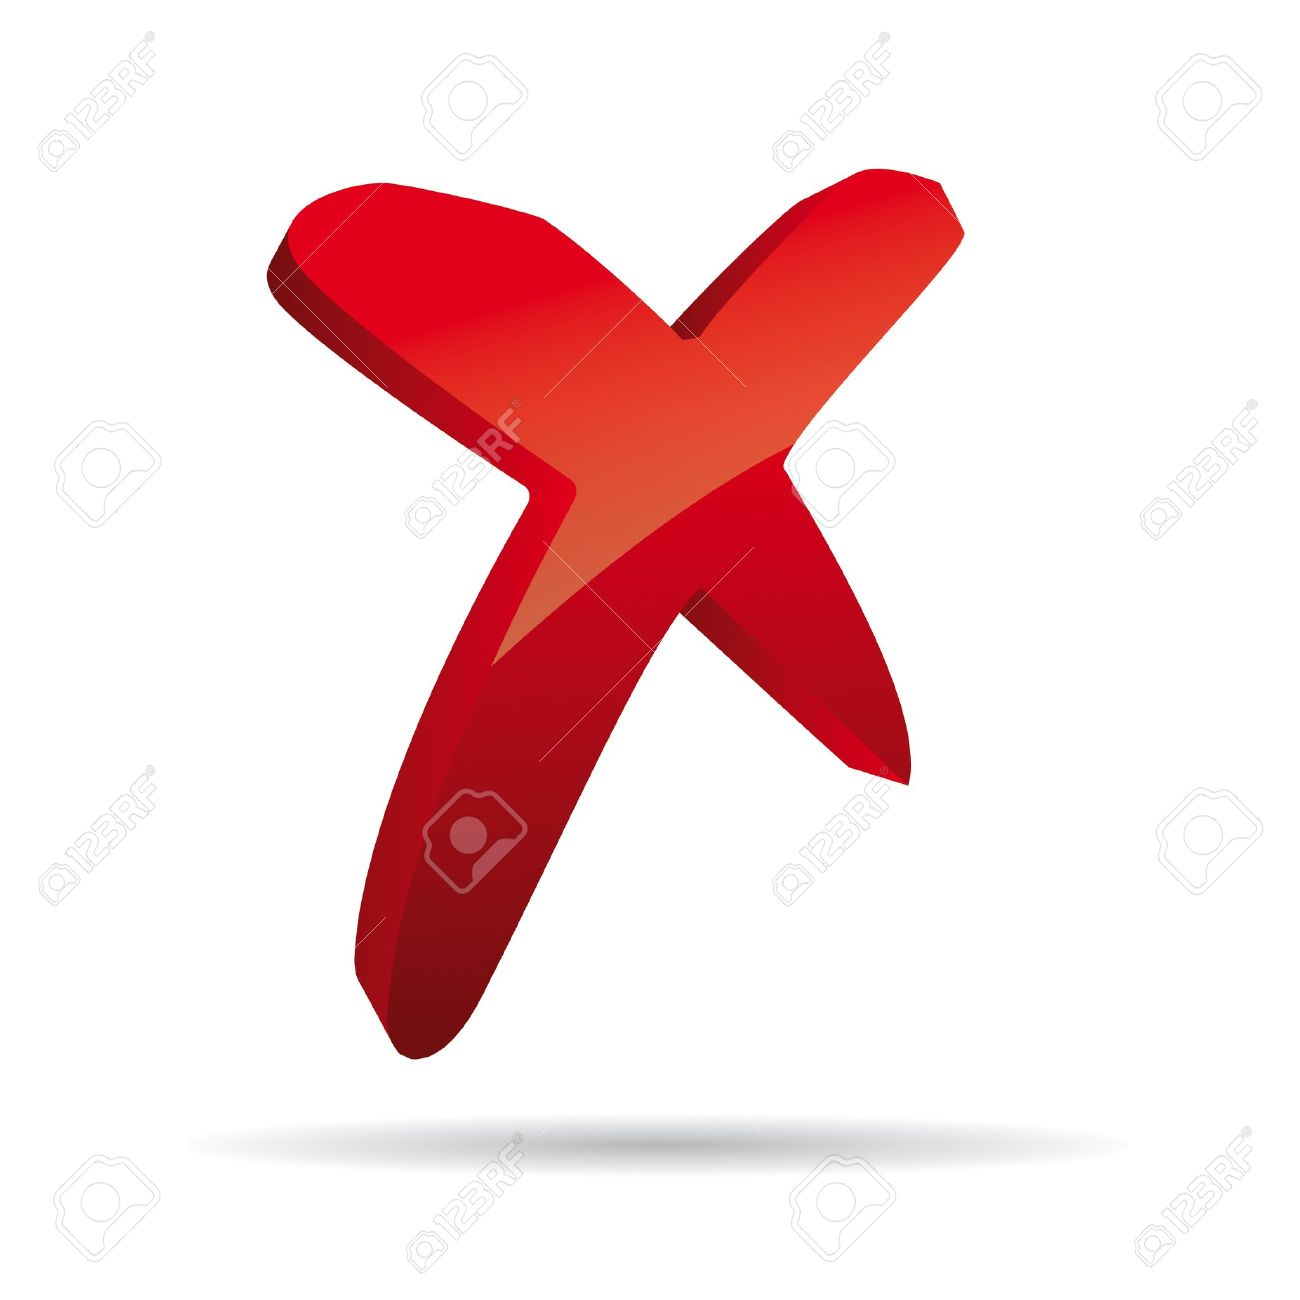 3D Vector red X cross sign icon Stock Vector - 12409931